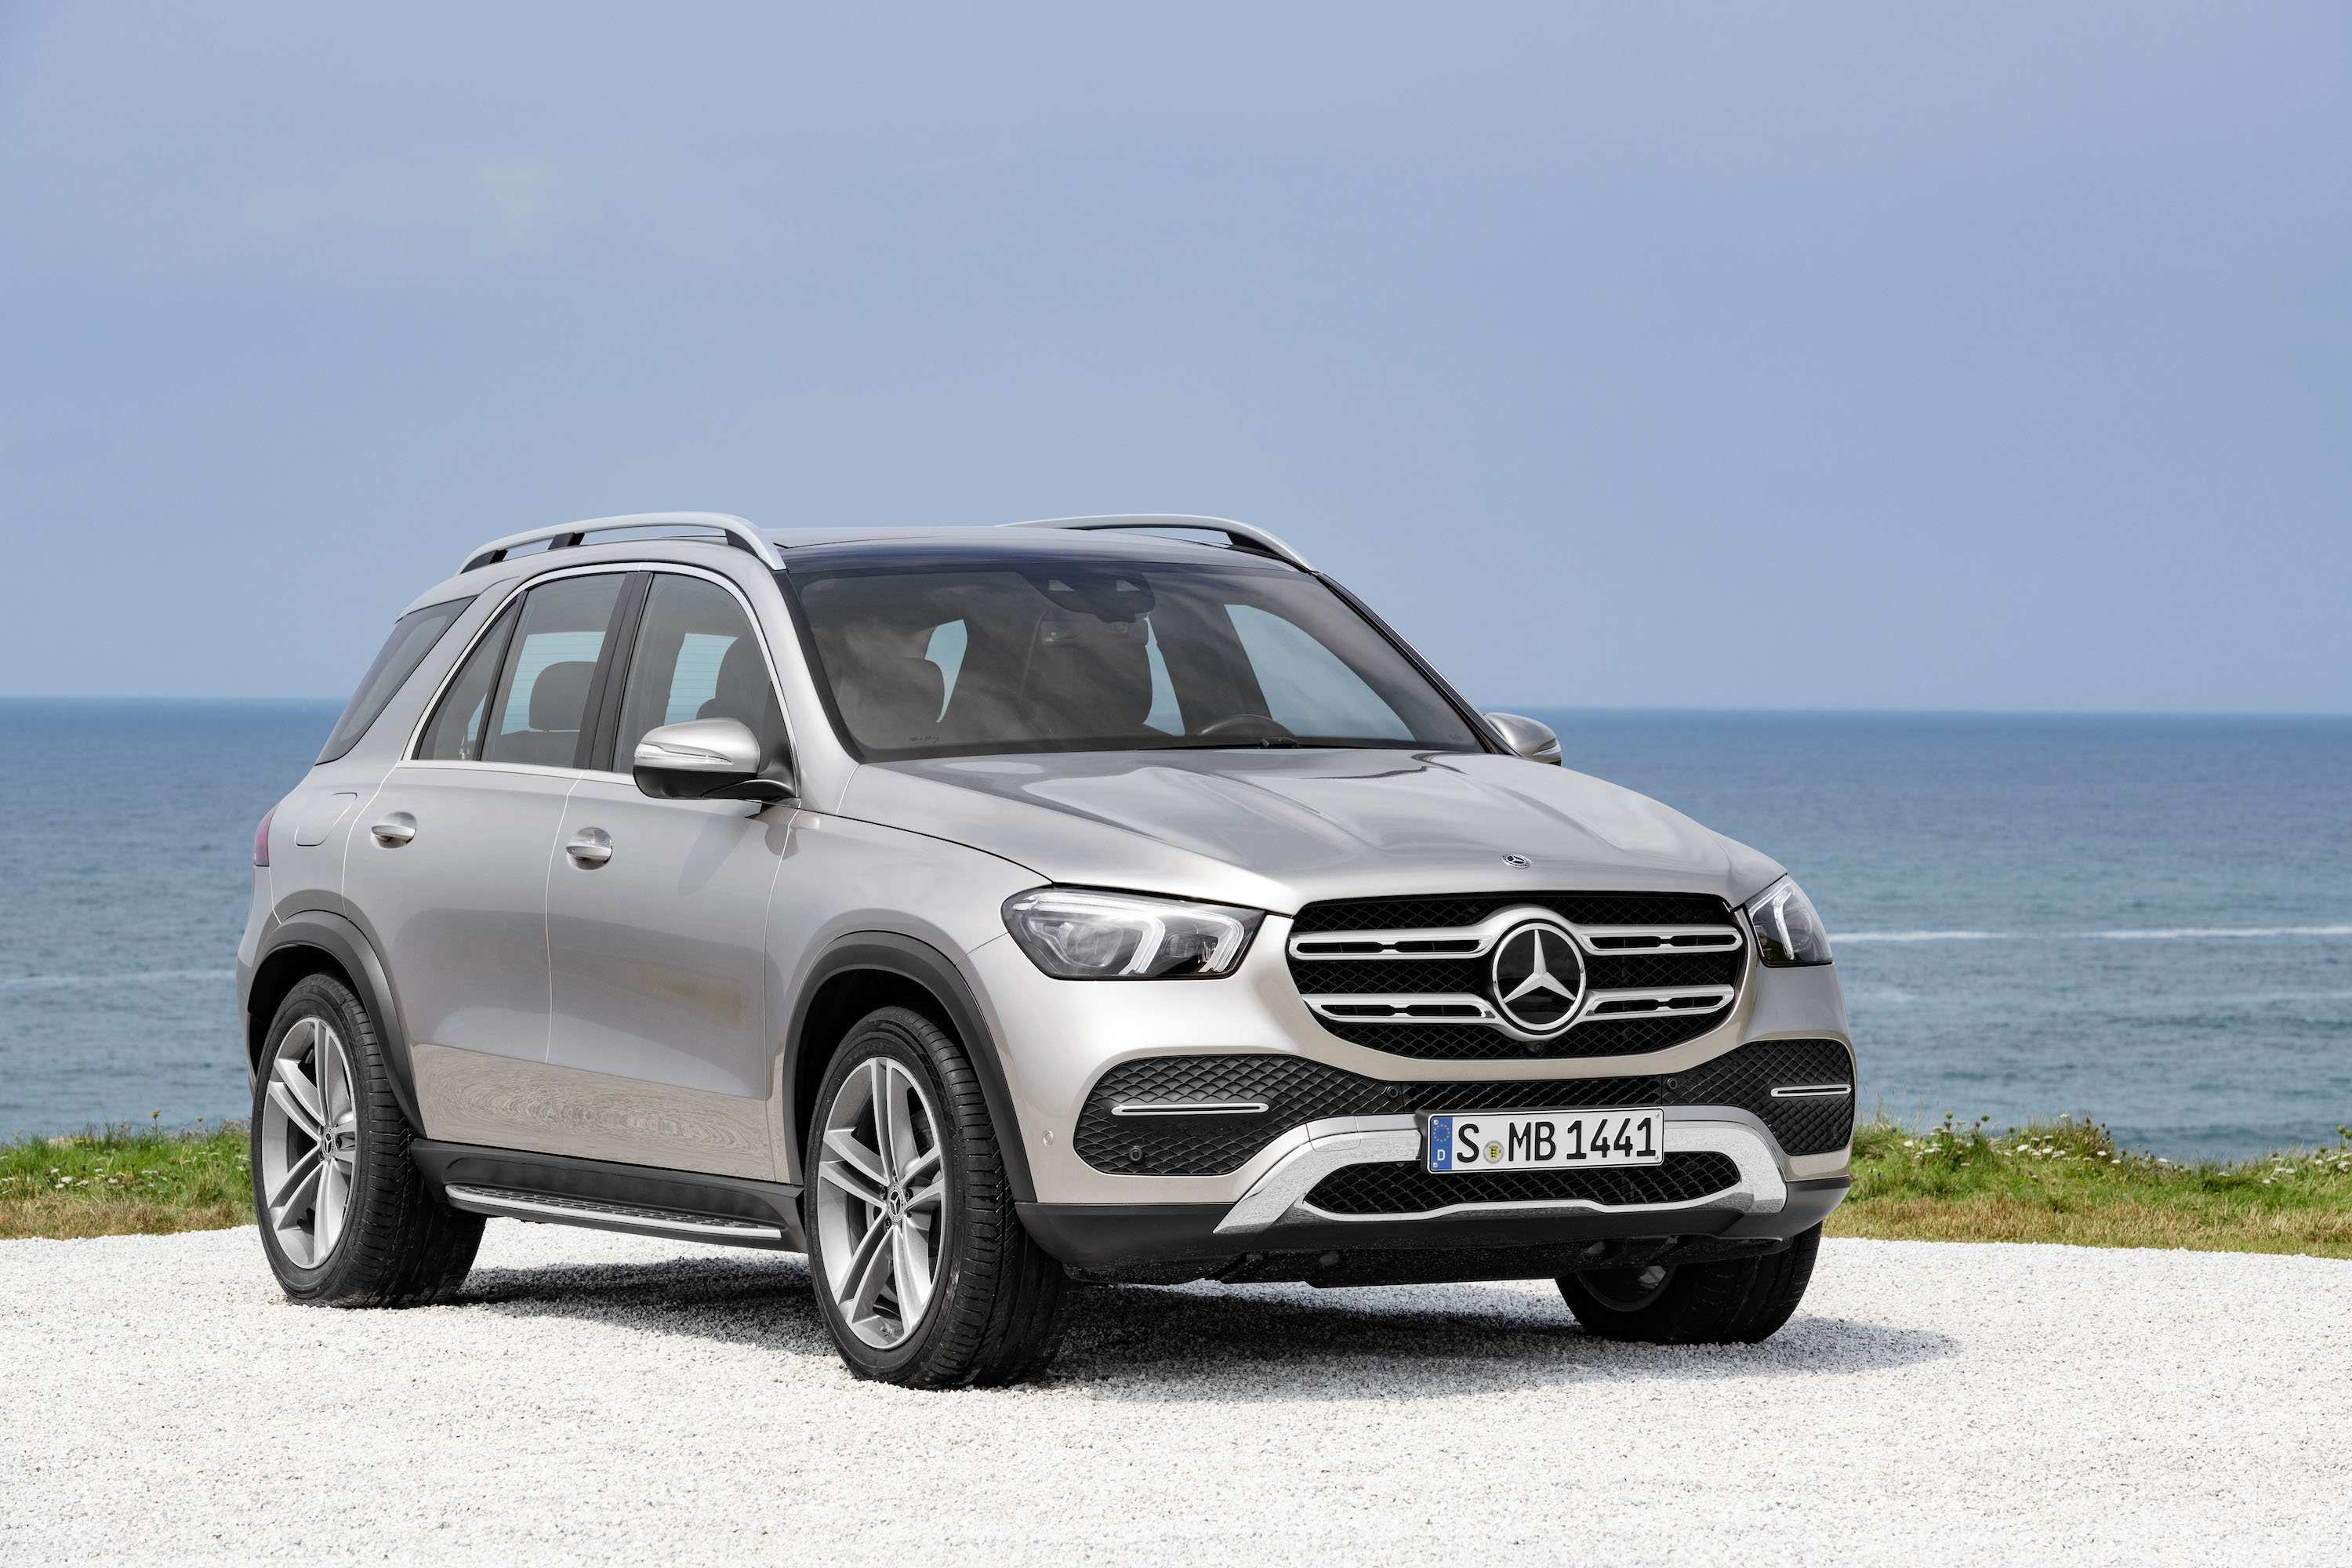 92 All New 2020 Mercedes Gl Class Specs for 2020 Mercedes Gl Class